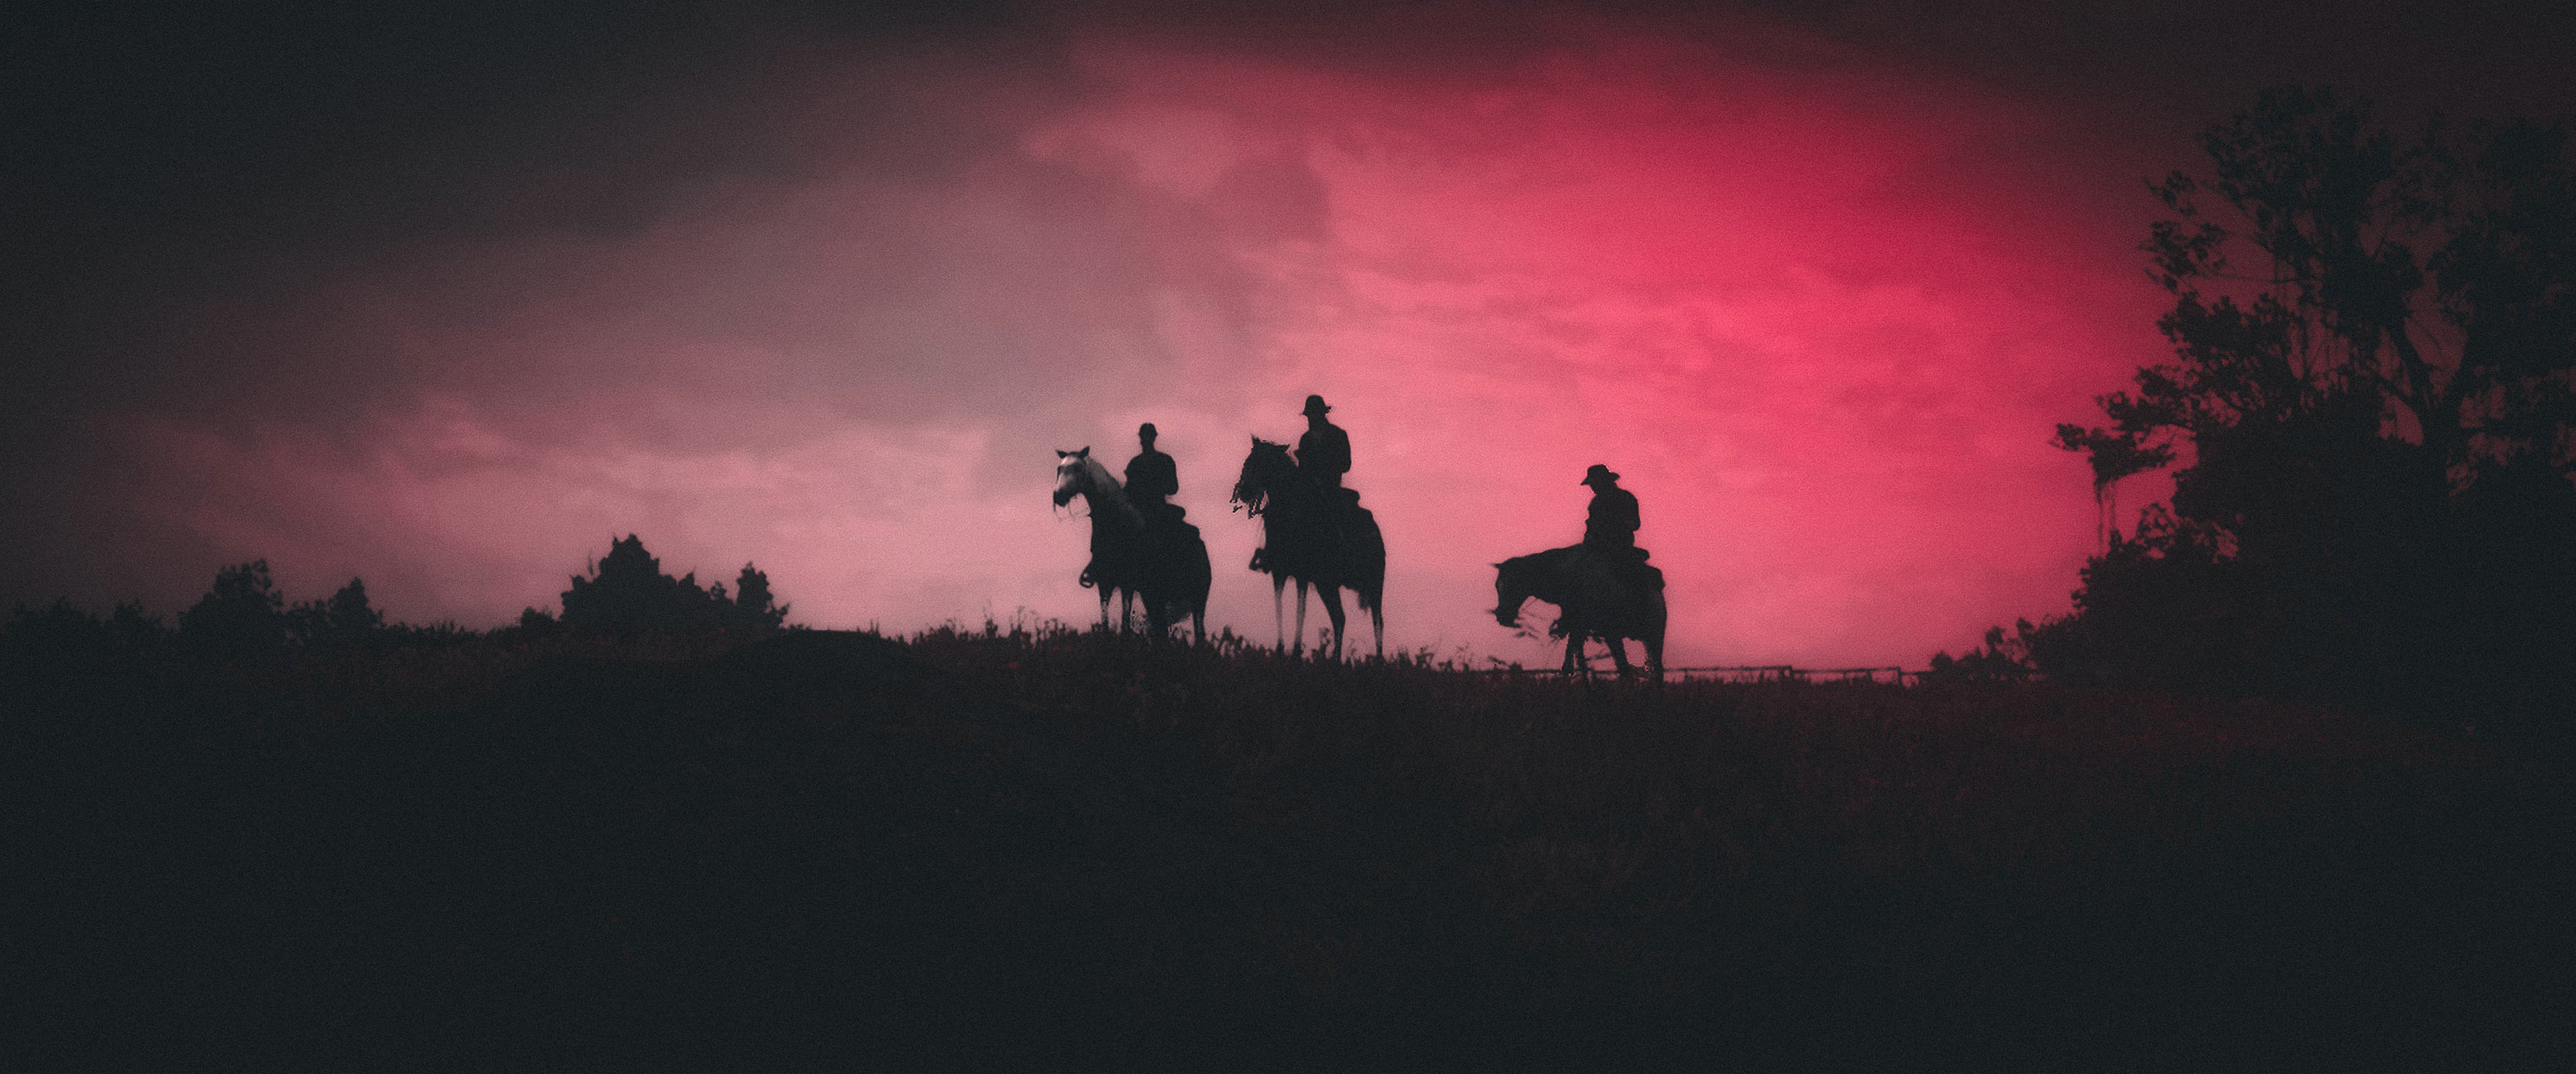 1920x1080 Red Dead Redemption 2 2019 Game 4k Laptop Full Hd